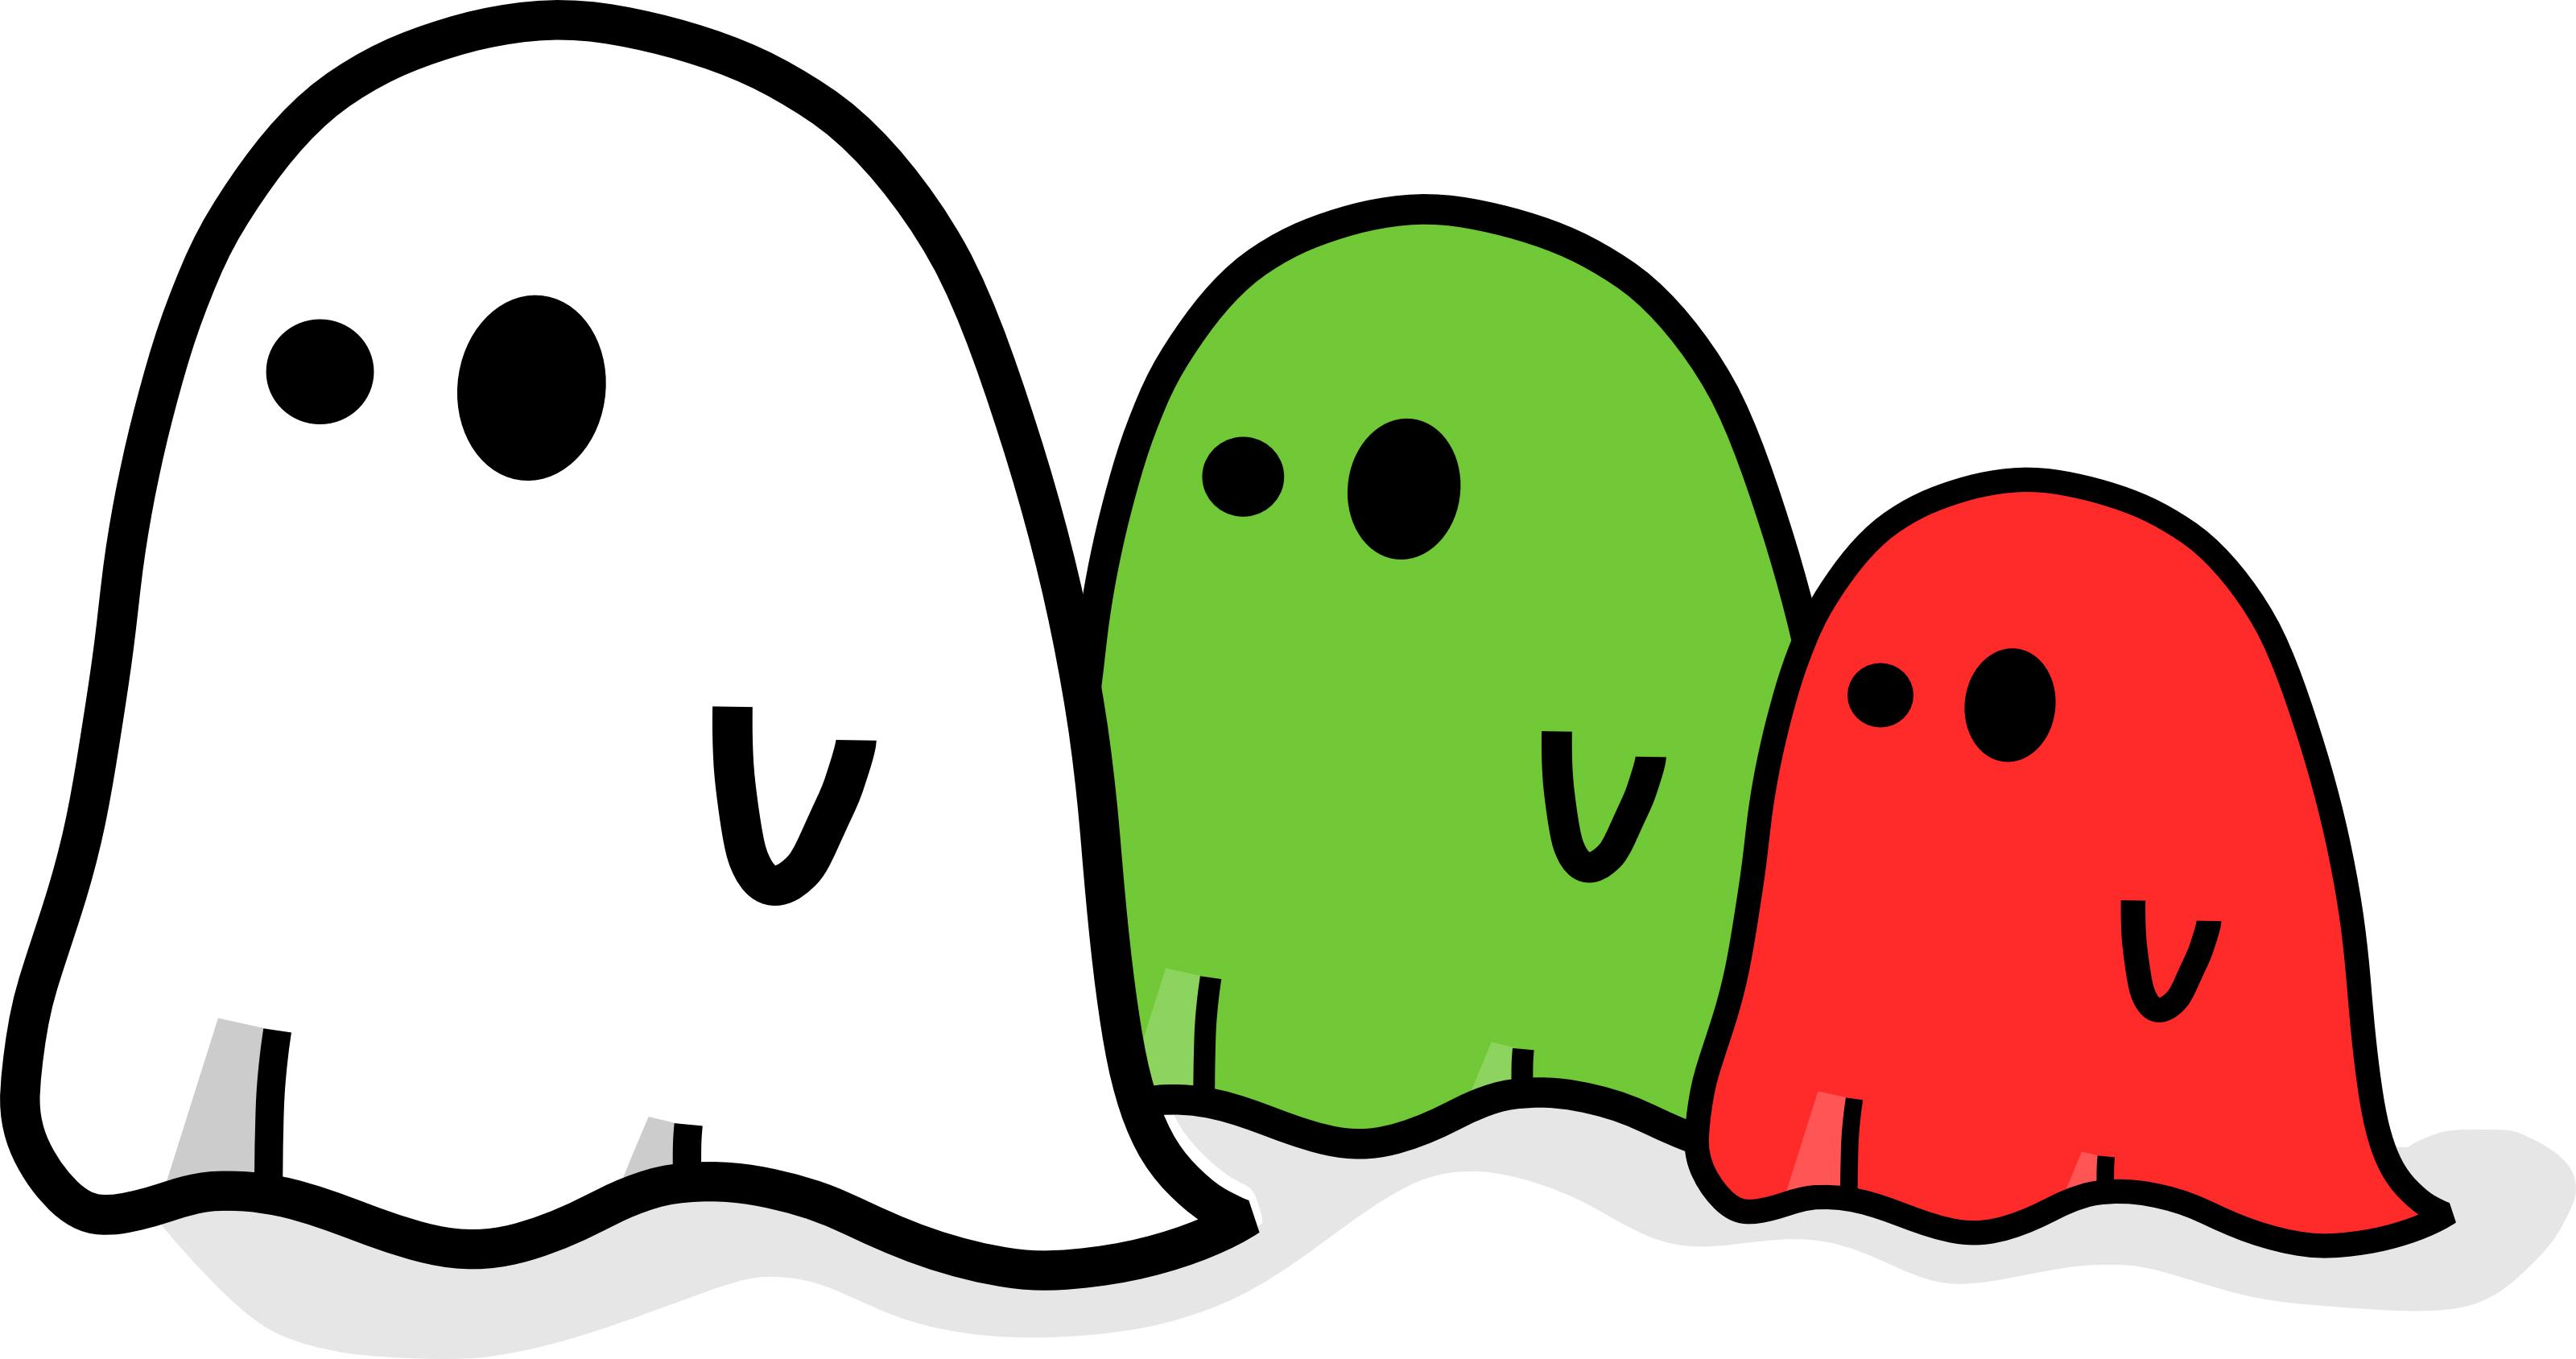 3200x1688 Unique Ghost Clip Art Ghosts Free Halloween Vector Clipart